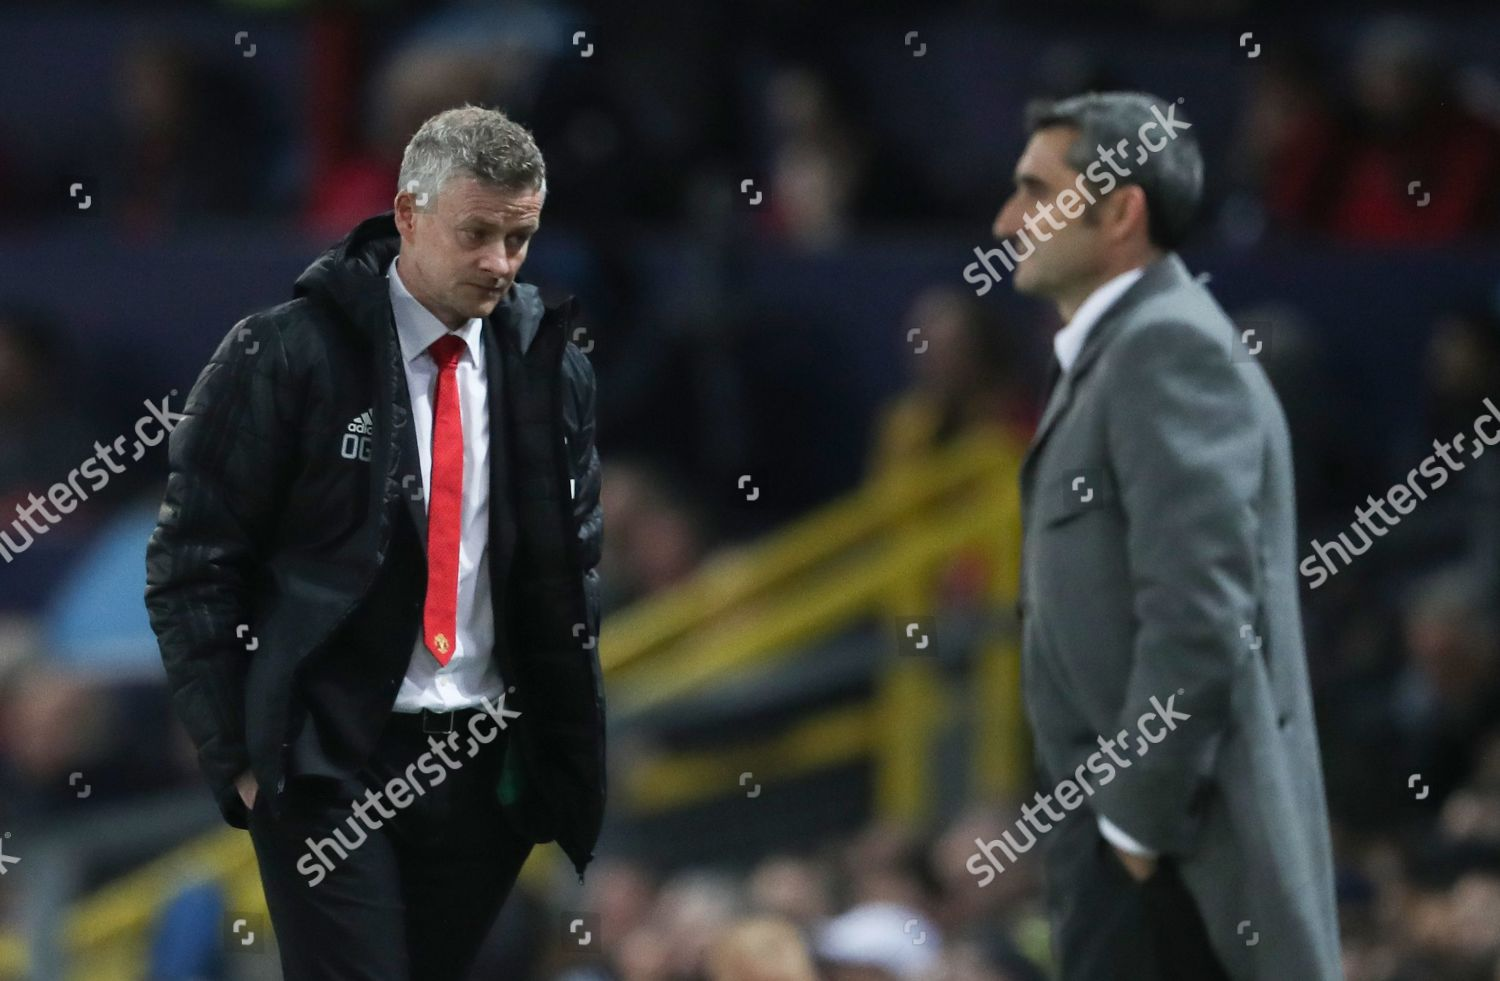 Manchester United manager Ole Gunnar Solskjaer worried Editorial